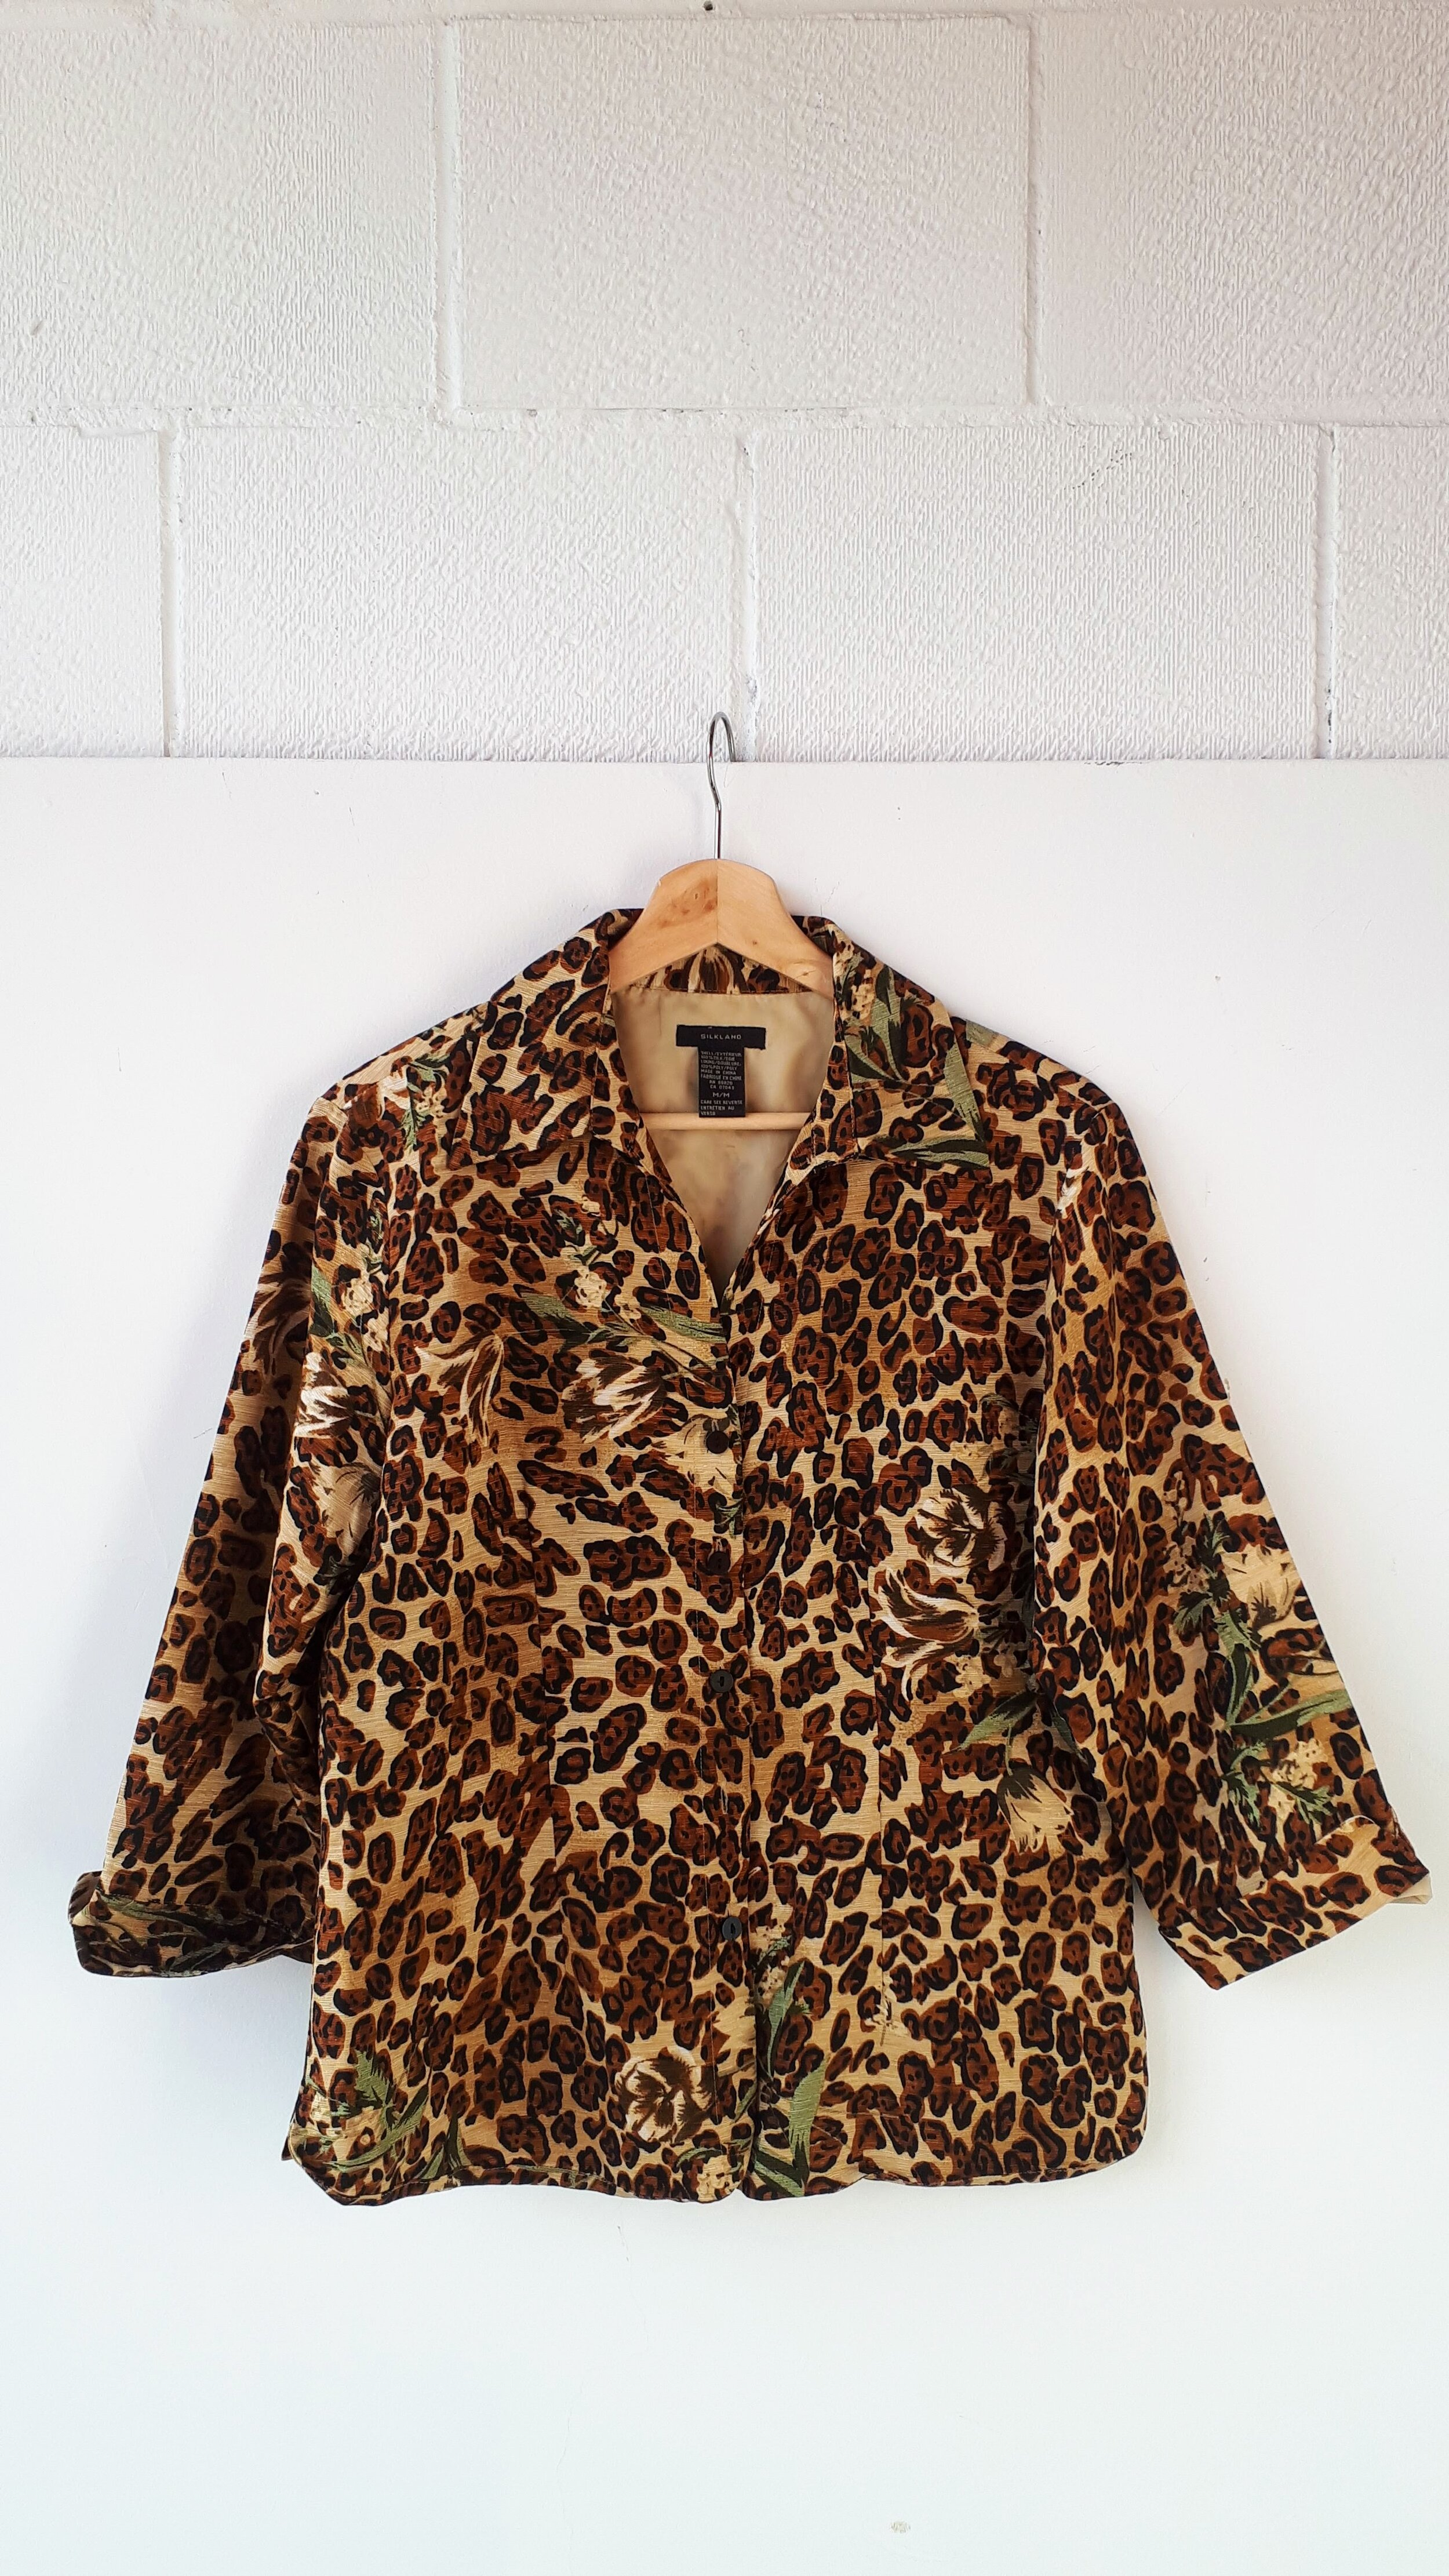 Silkland shirt; Size M $28 (on sale for $12!)